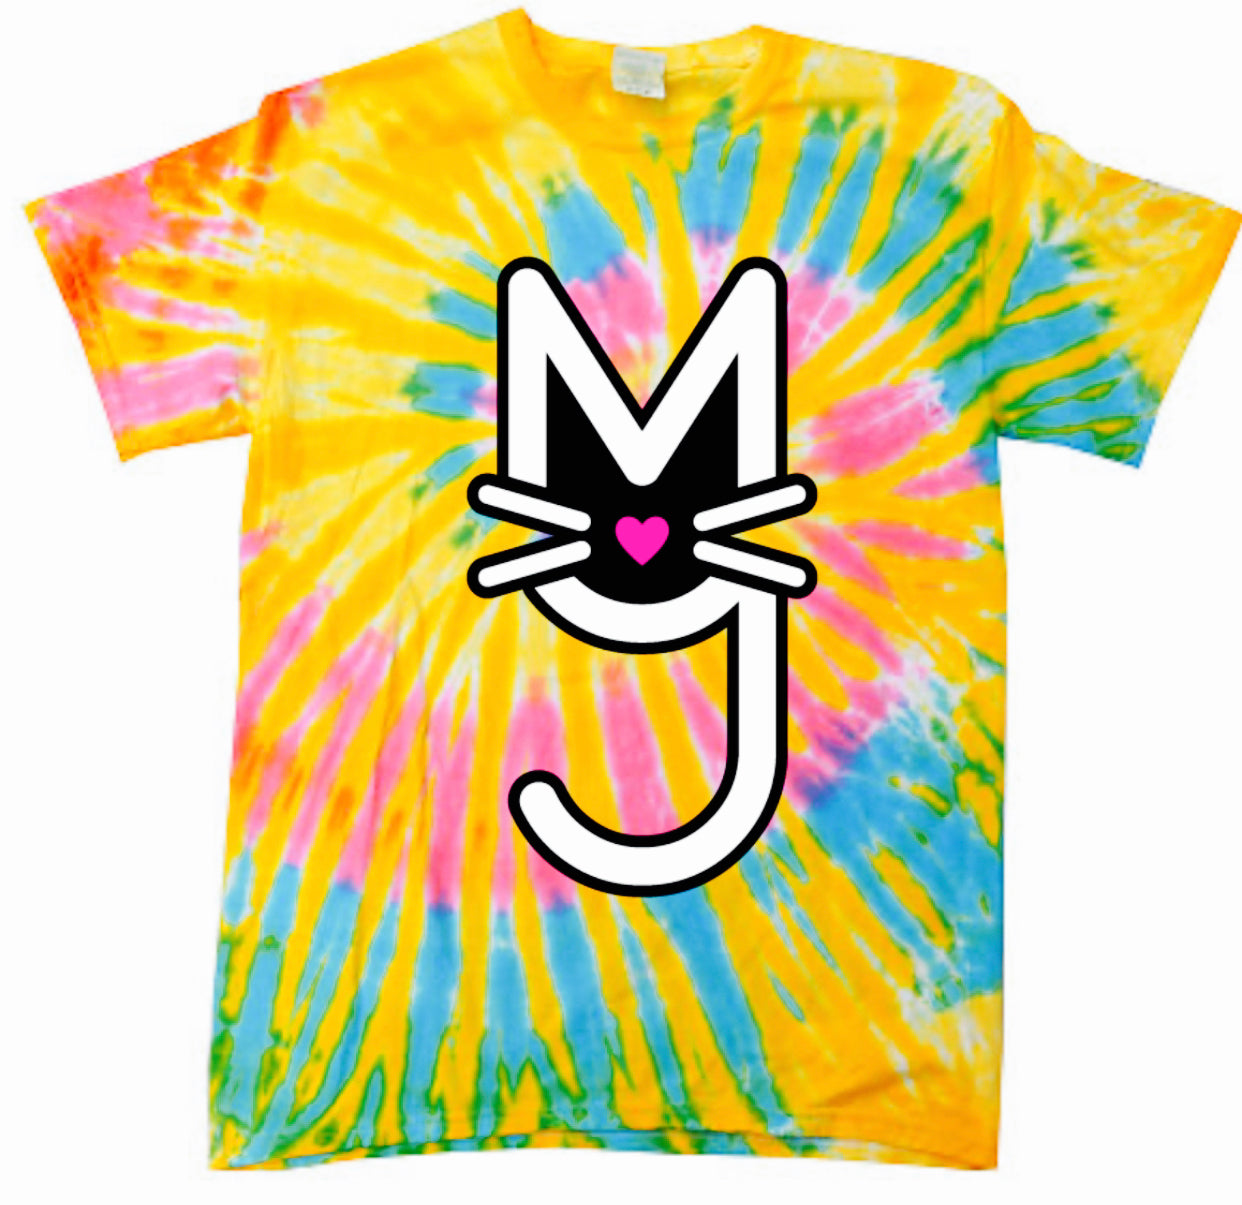 The Simi, Kitty Kat Tie Dye Tee